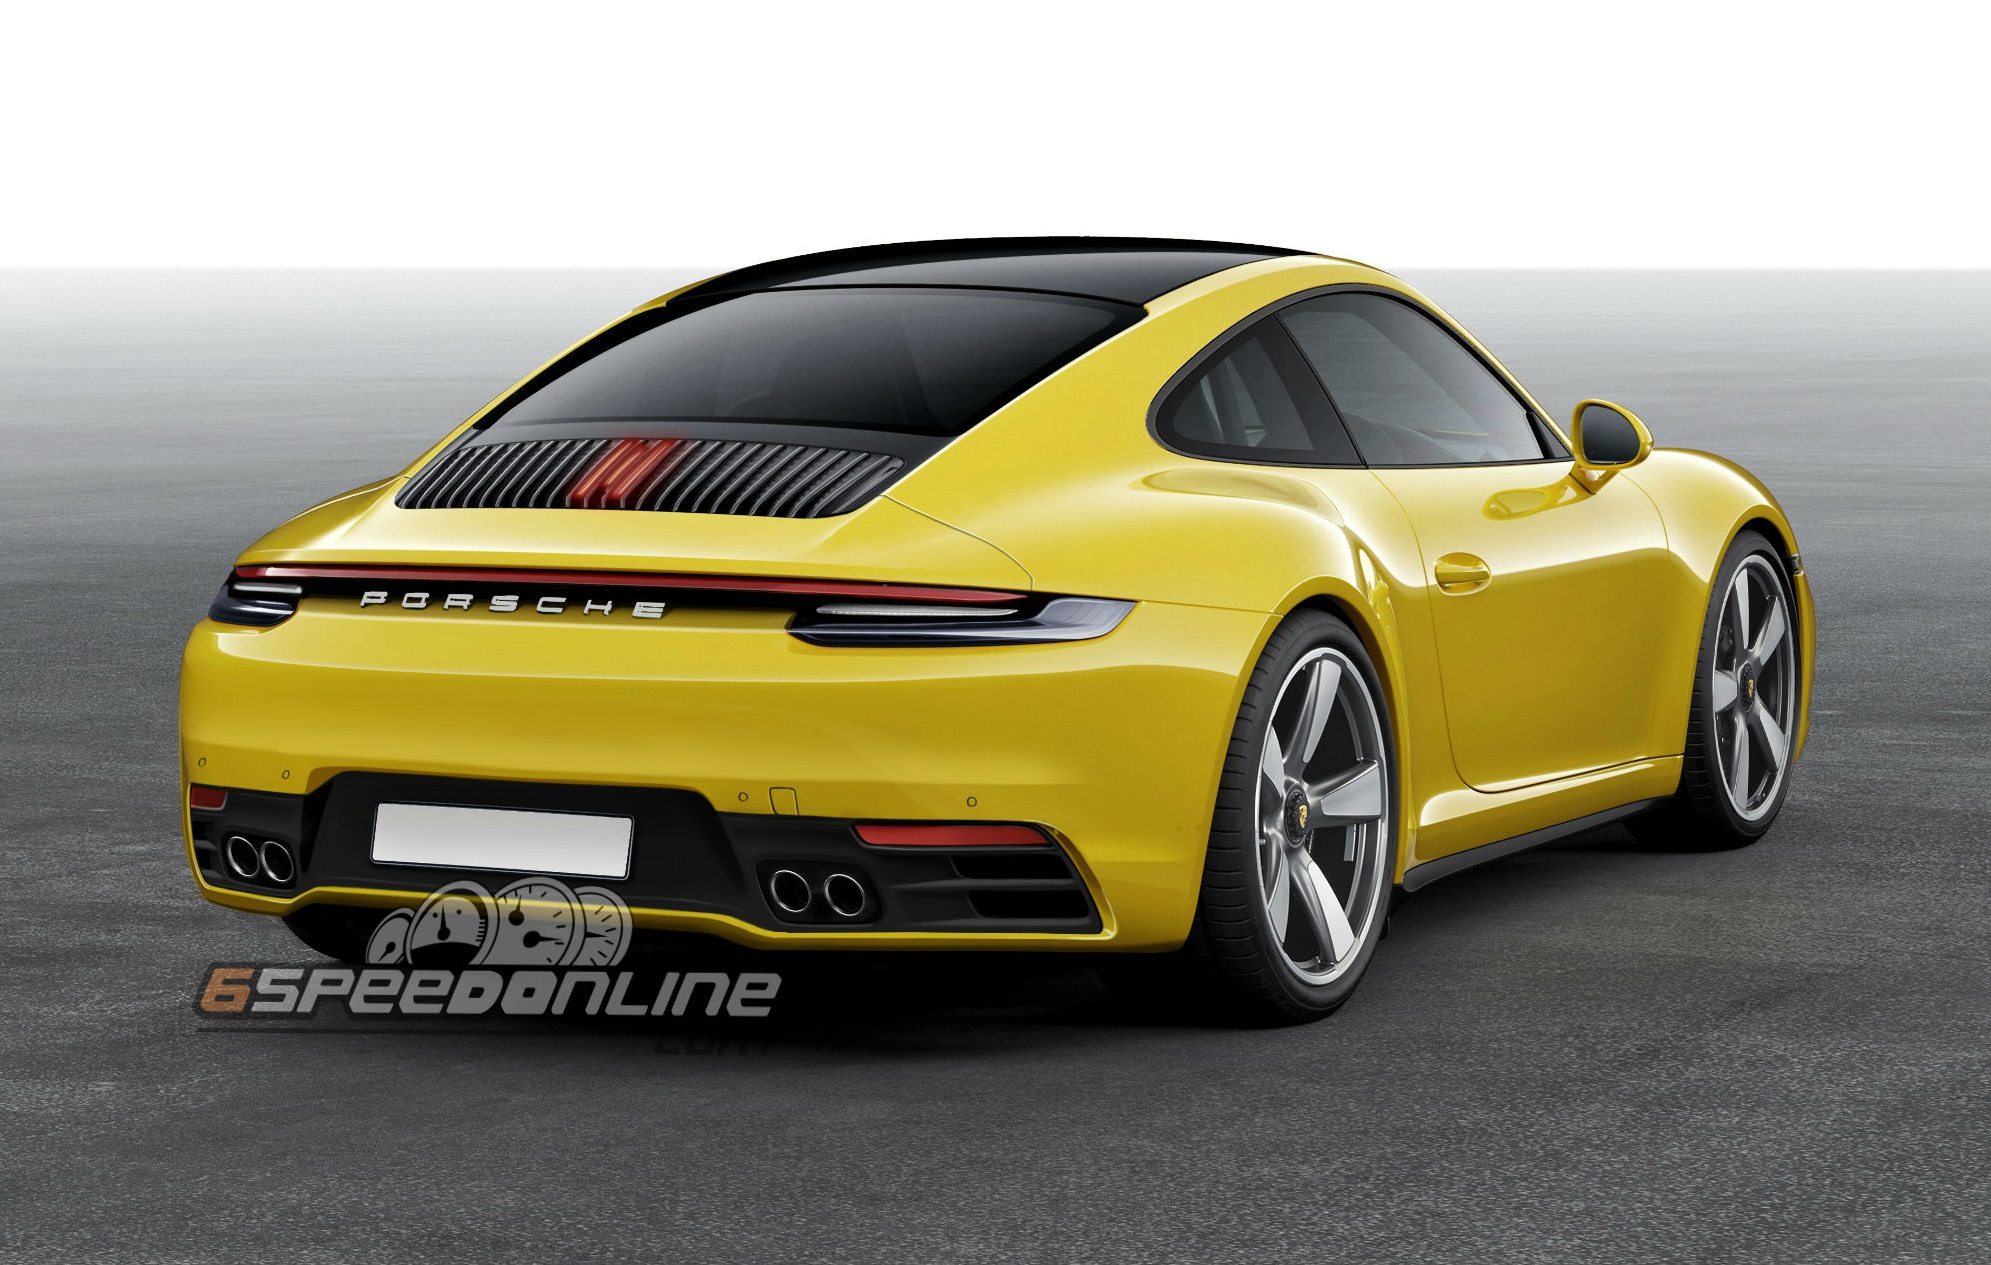 2020 Porsche 992 911 Carrera: This is It - 6SpeedOnline